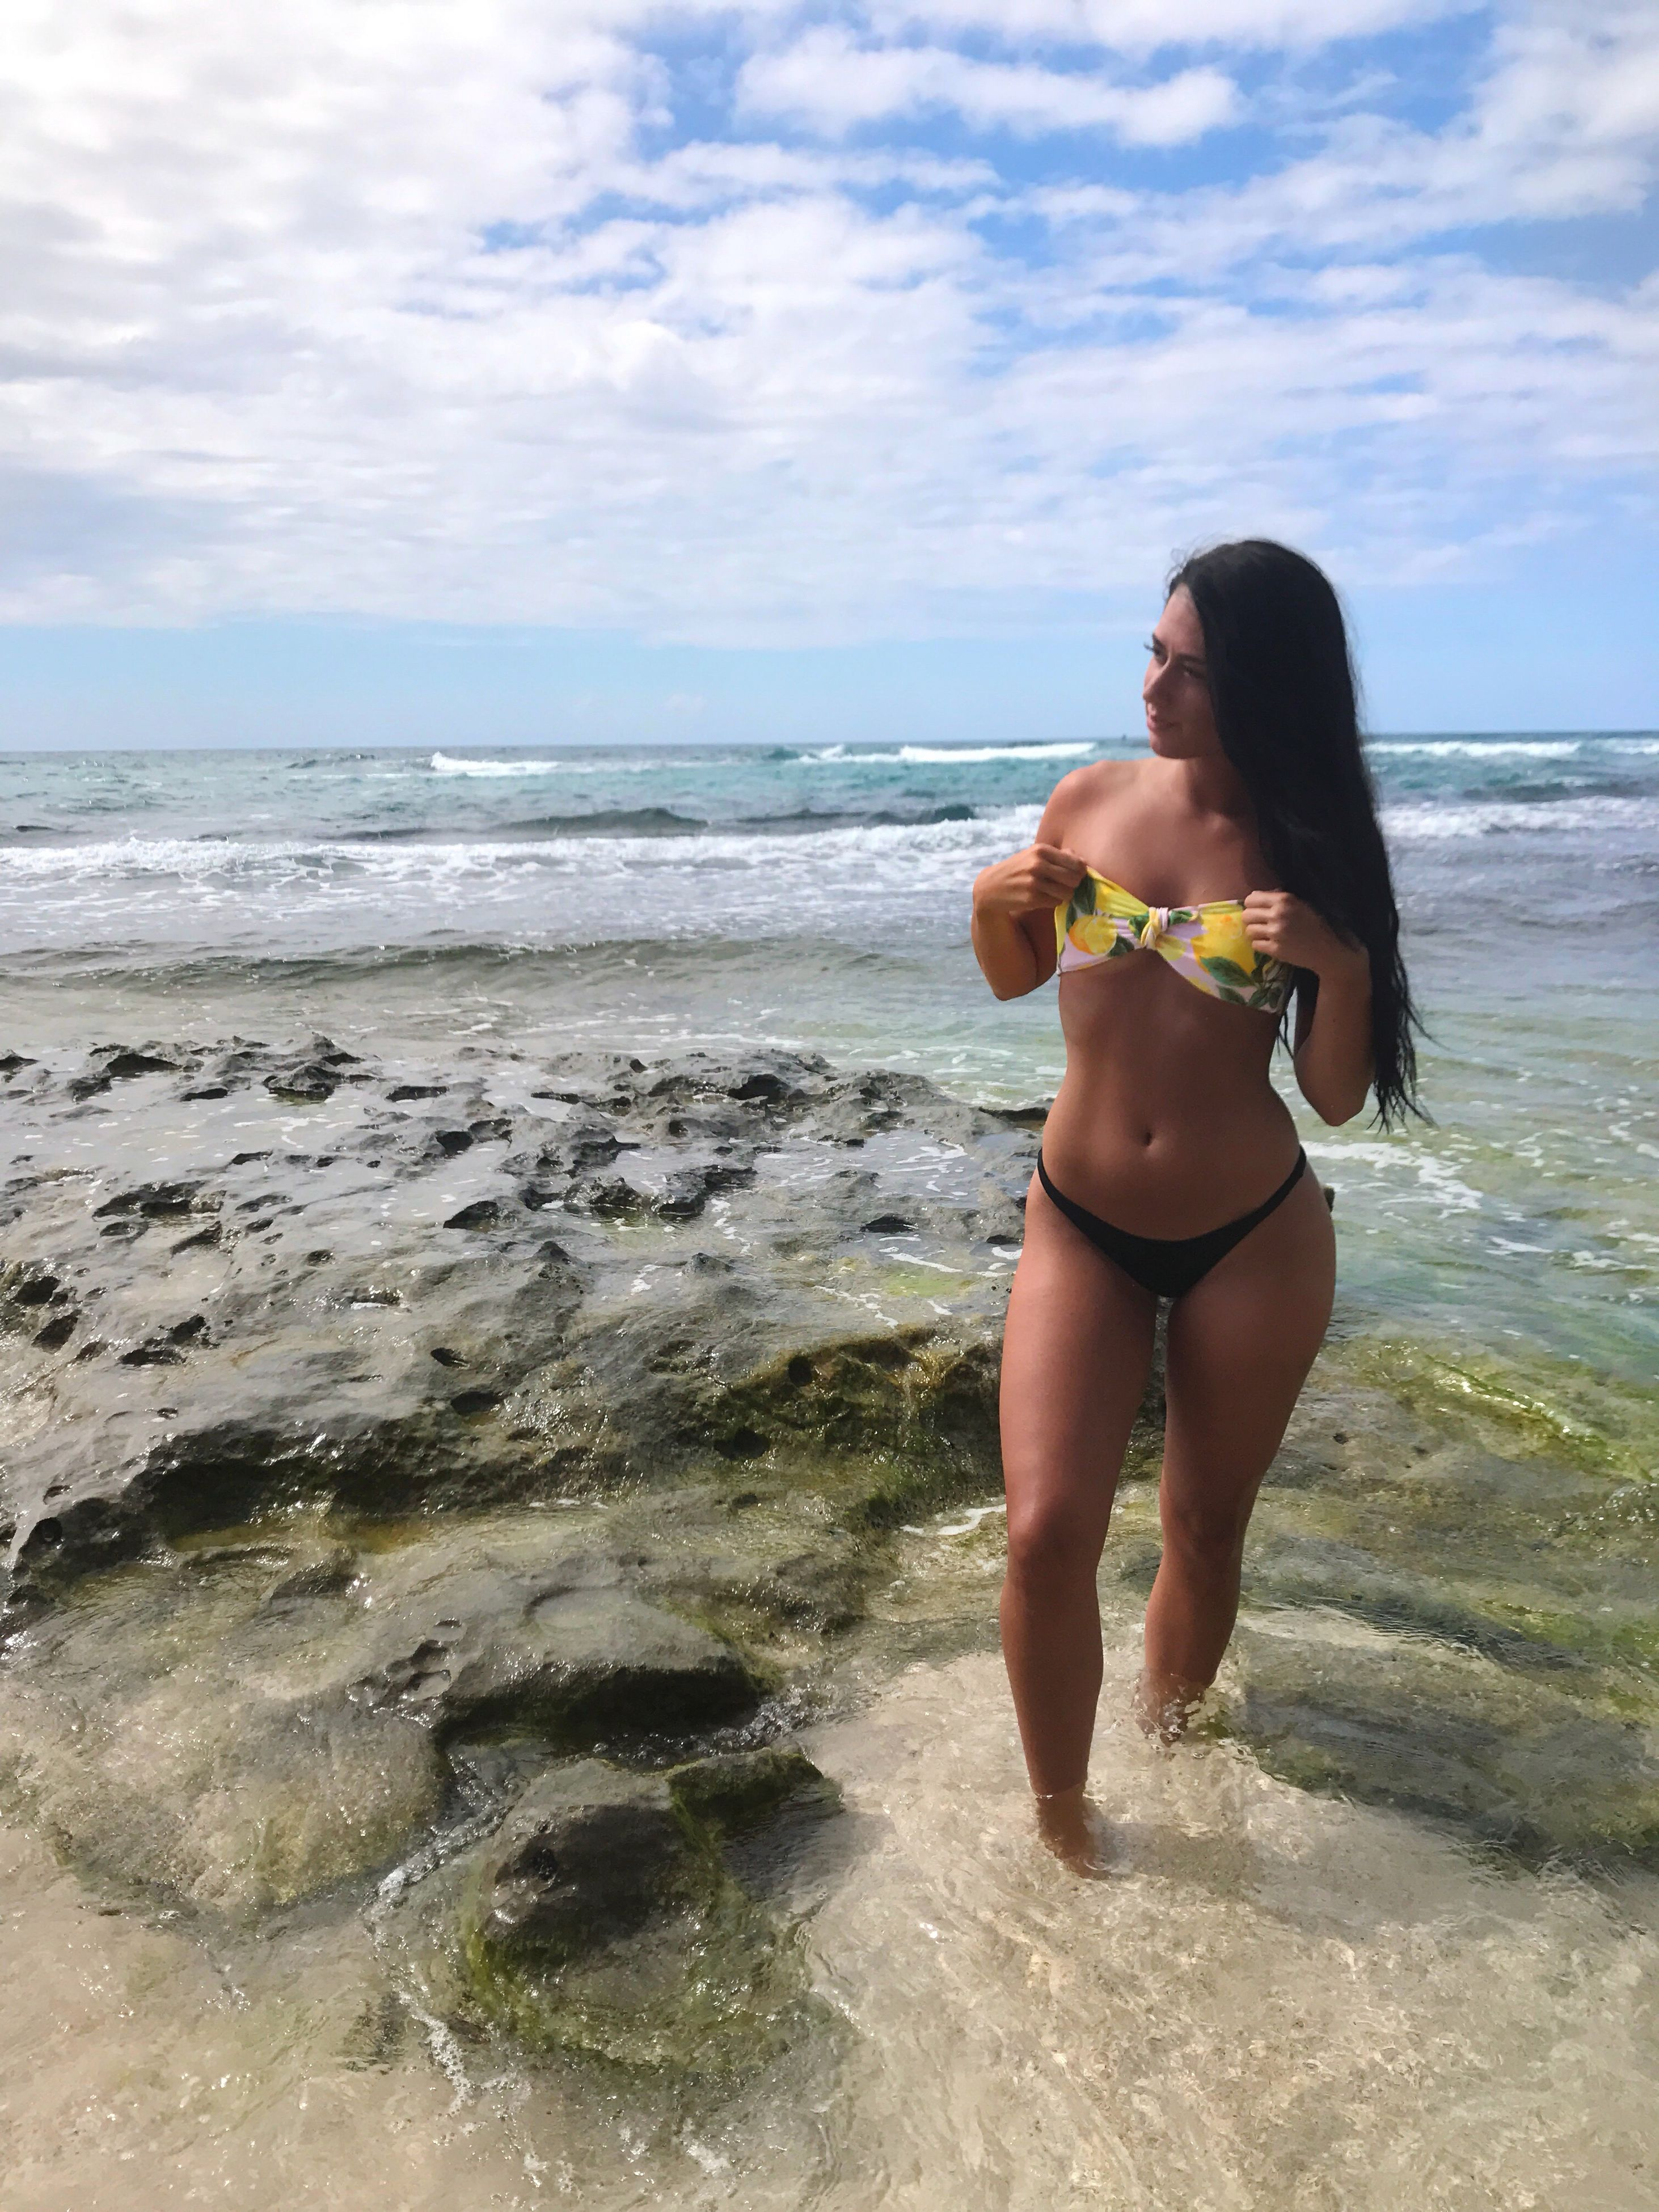 sea, water, sky, beach, one person, nature, real people, beauty in nature, leisure activity, horizon over water, bikini, young adult, young women, standing, full length, scenics, cloud - sky, lifestyles, day, outdoors, beautiful woman, vacations